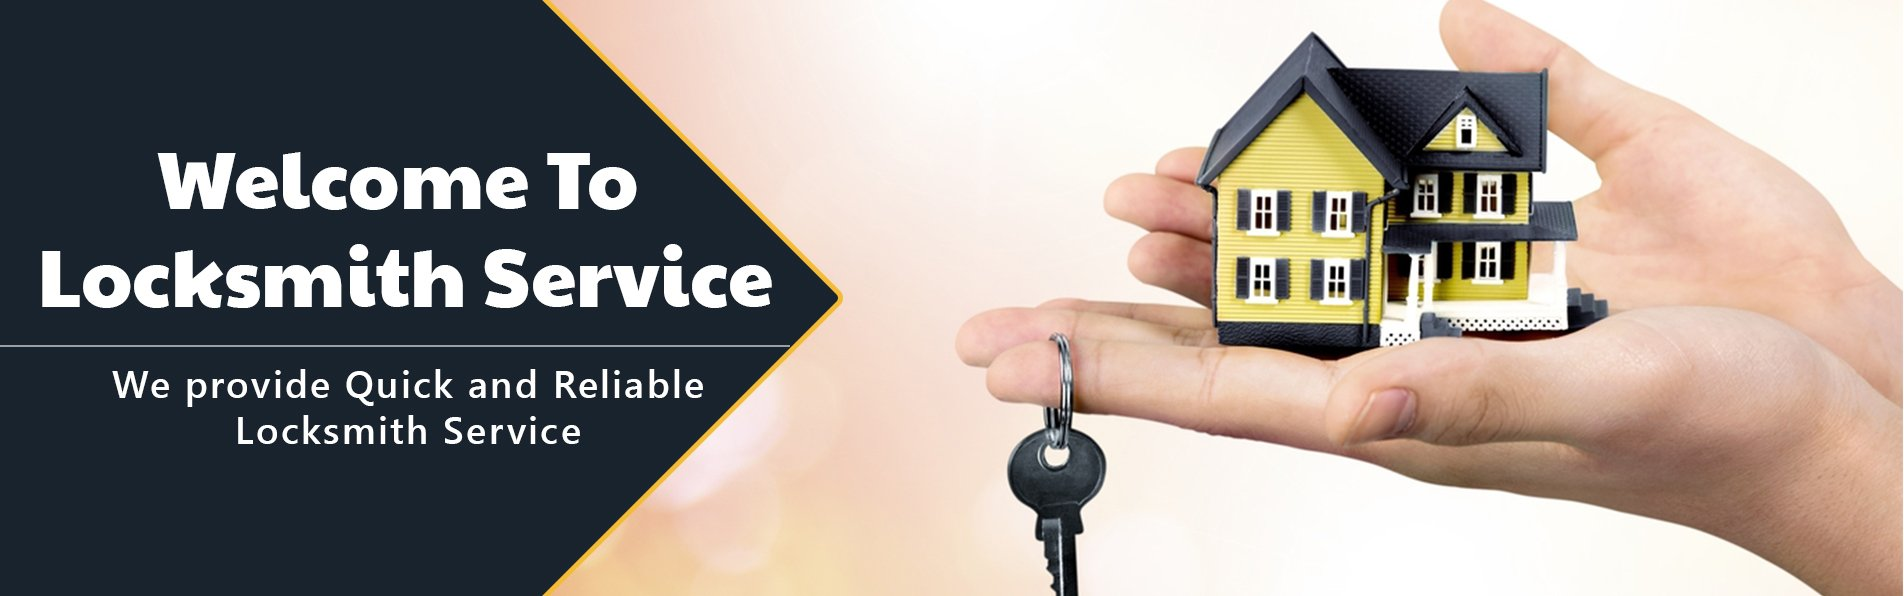 Richmond-Locksmith-Store, Richmond, VA 610-615-0070